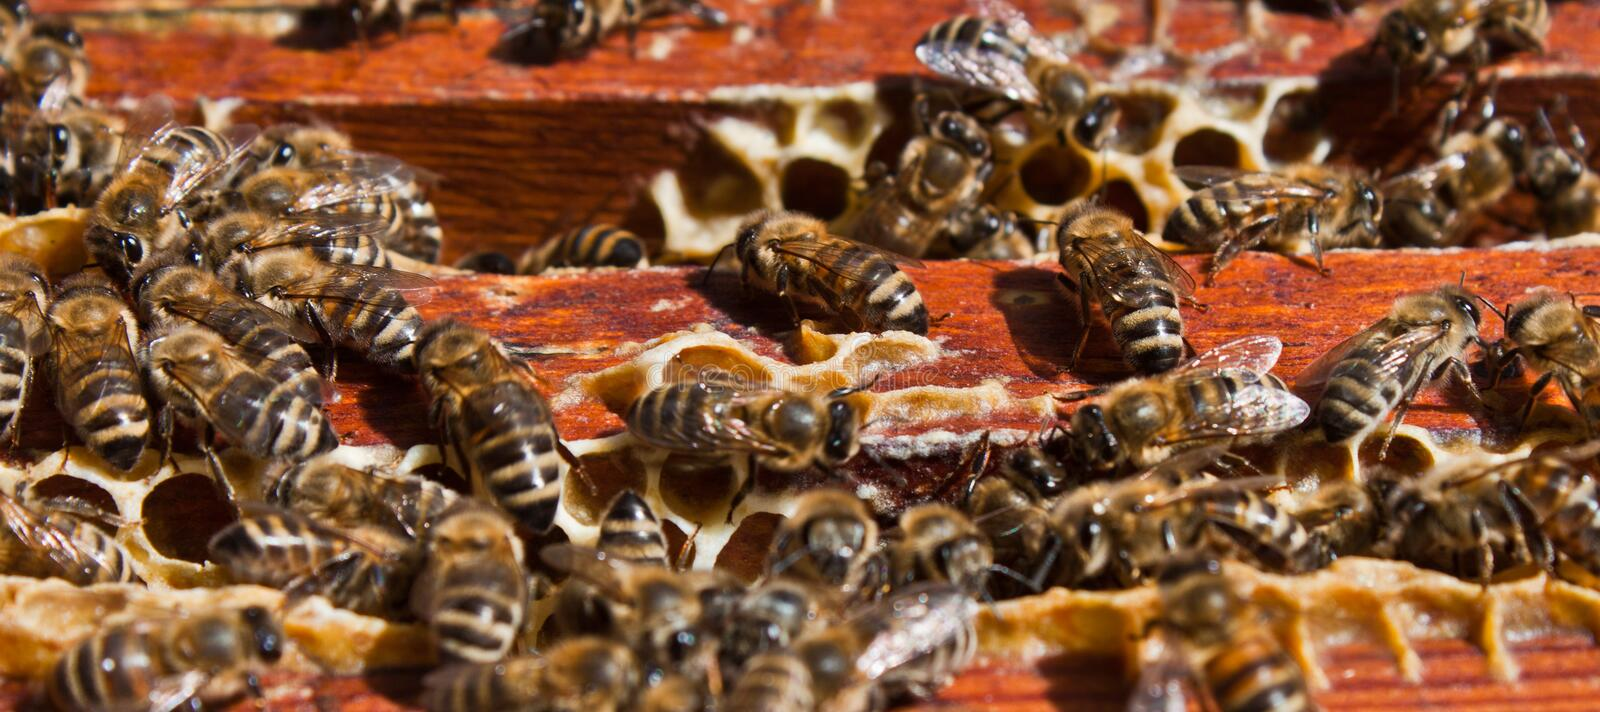 Download Honey bee stock image. Image of brood, eating, animal - 19748853